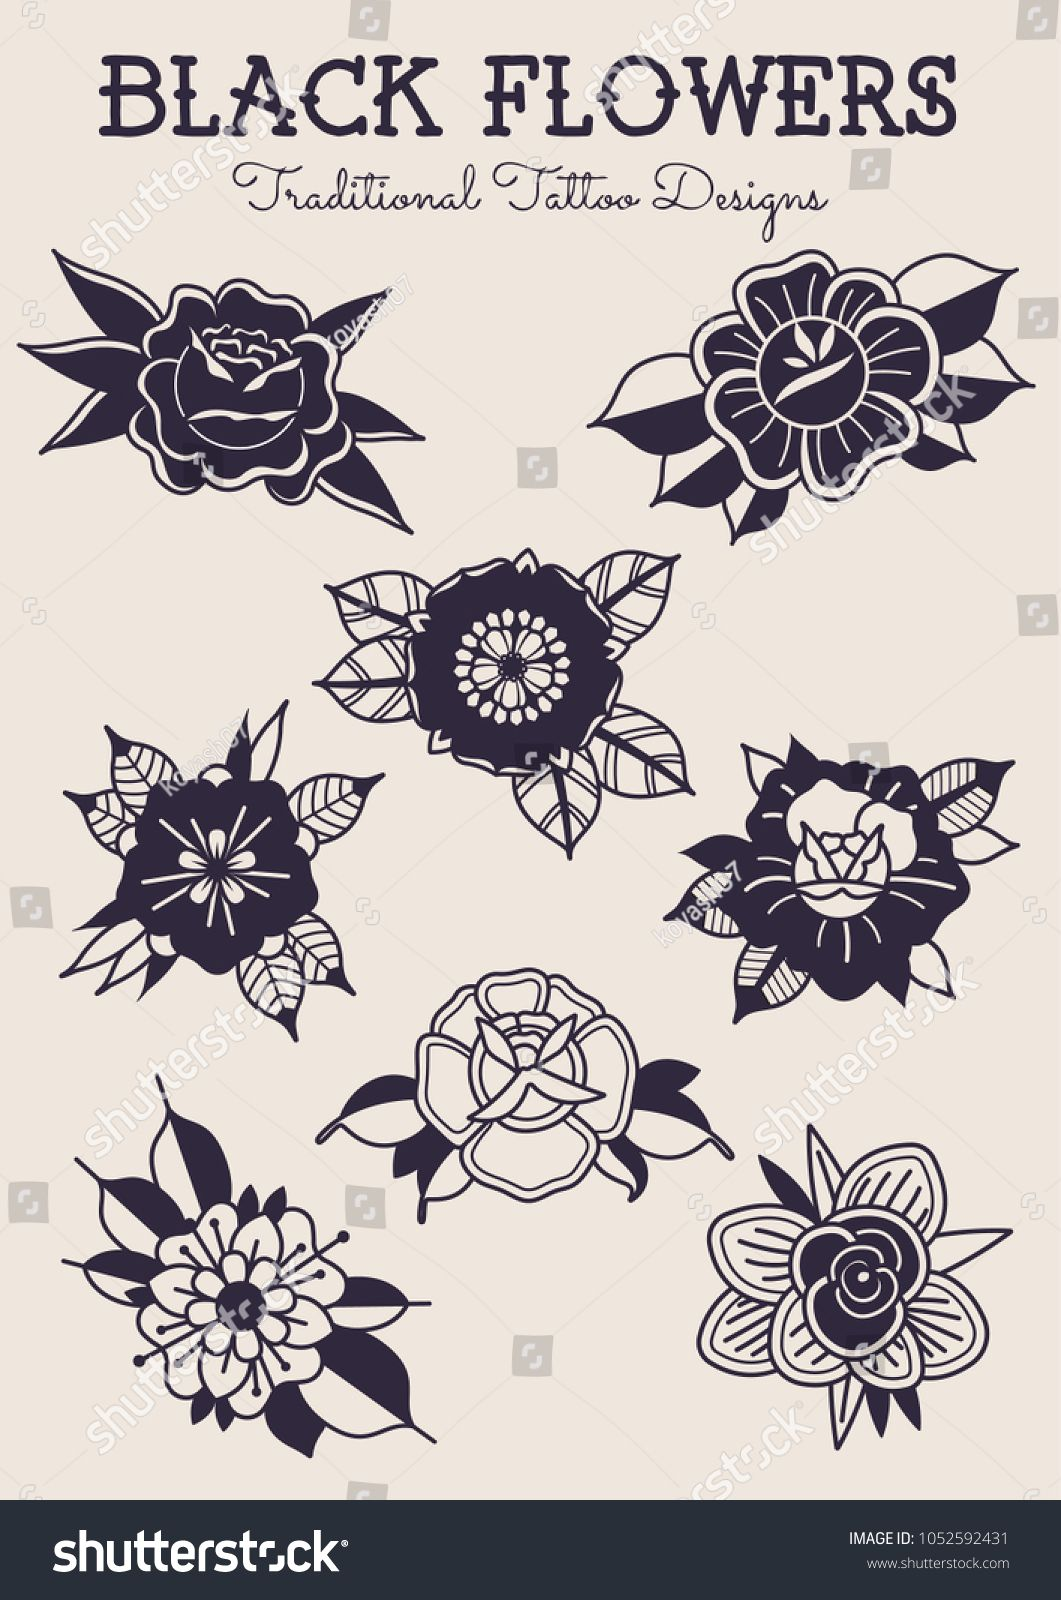 Black Flowers Traditional Tattoo Designs Stock Vector Royalty Free 1052592431 Traditional Tattoo Design Traditional Tattoo Flowers Black Art Tattoo